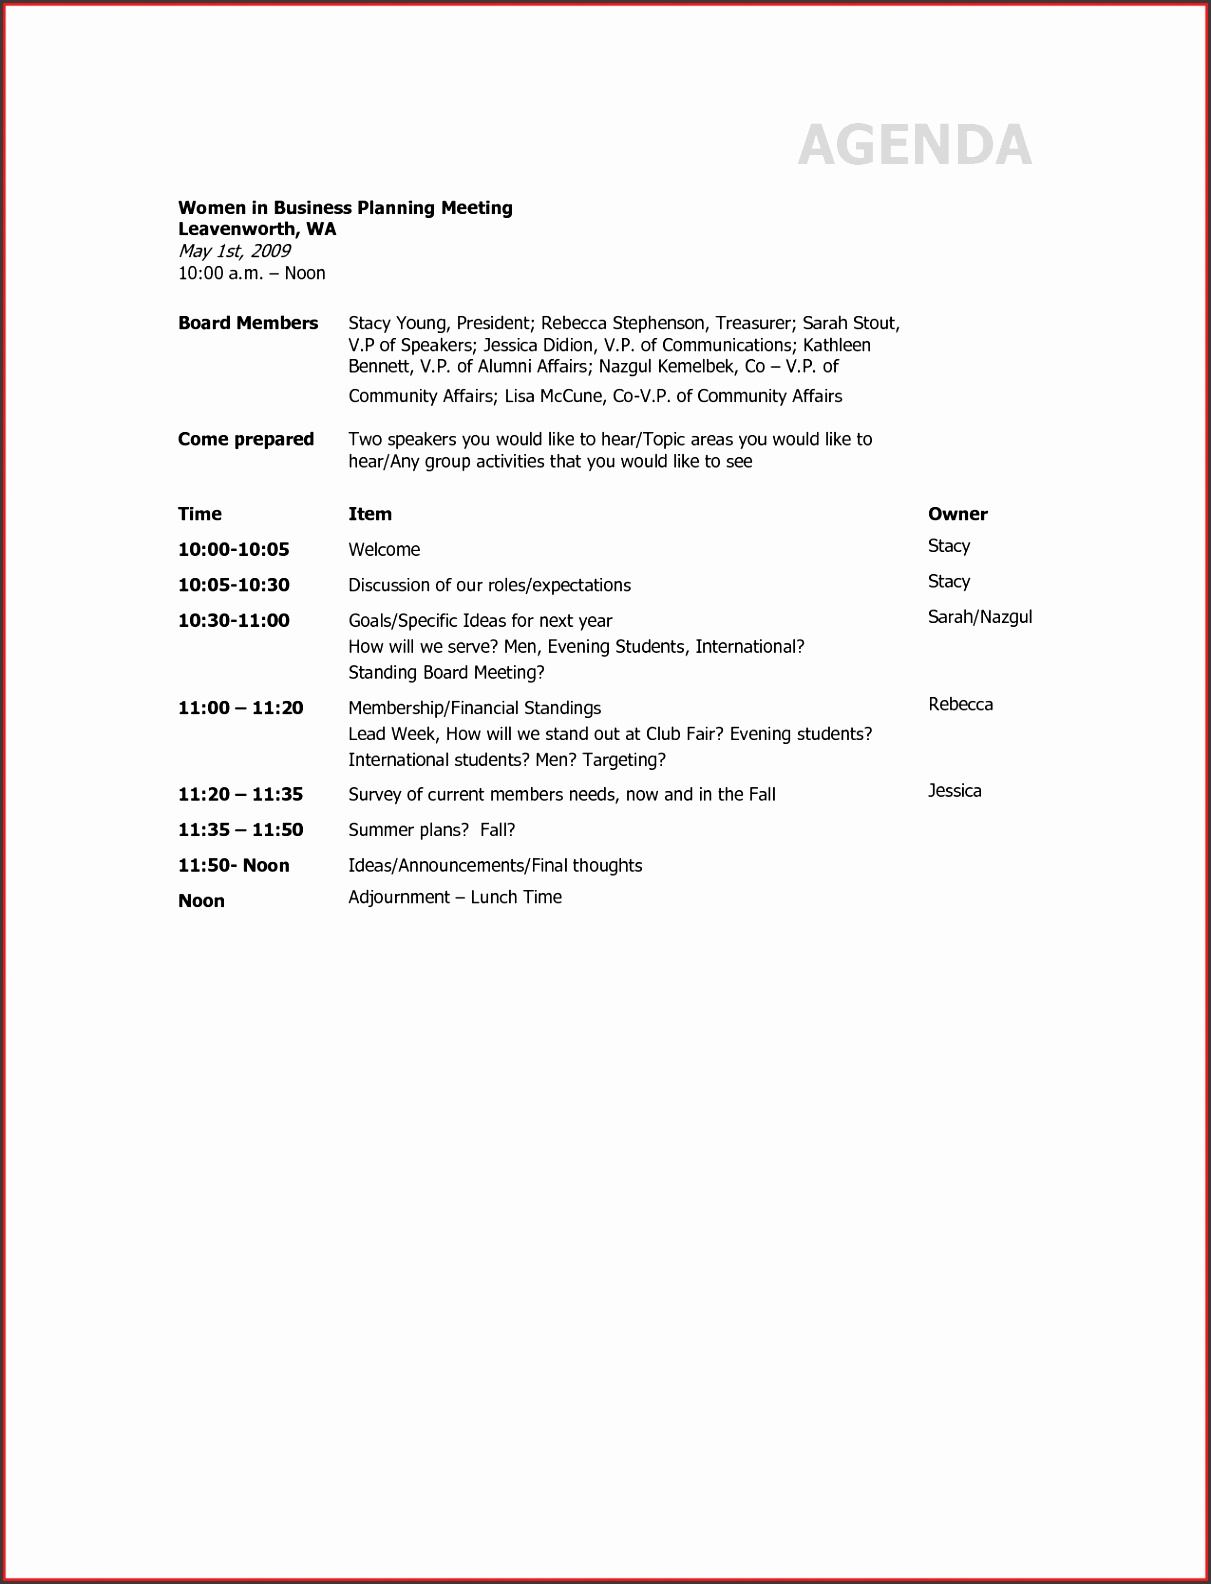 Fresh Agenda For Business Meeting Template Resume For A Job Agenda For Business Meeting Template Awesome Planning Meeting Agenda Run Down Template Sample